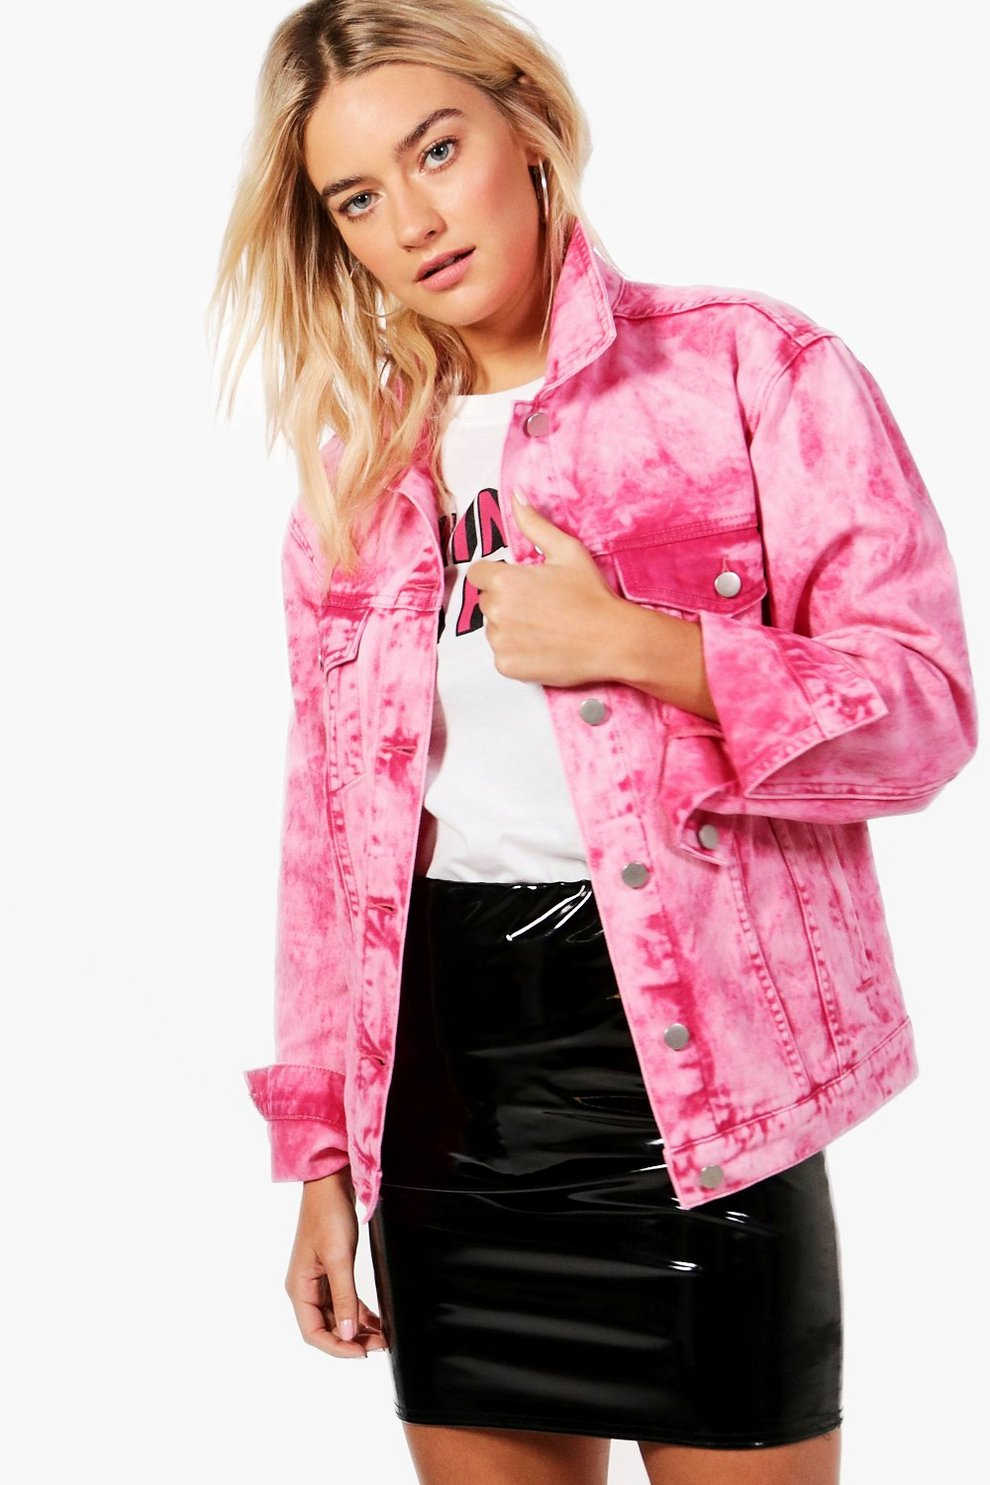 c1a82a40ad6 Hot Pink Acid Wash Oversize Denim Jacket